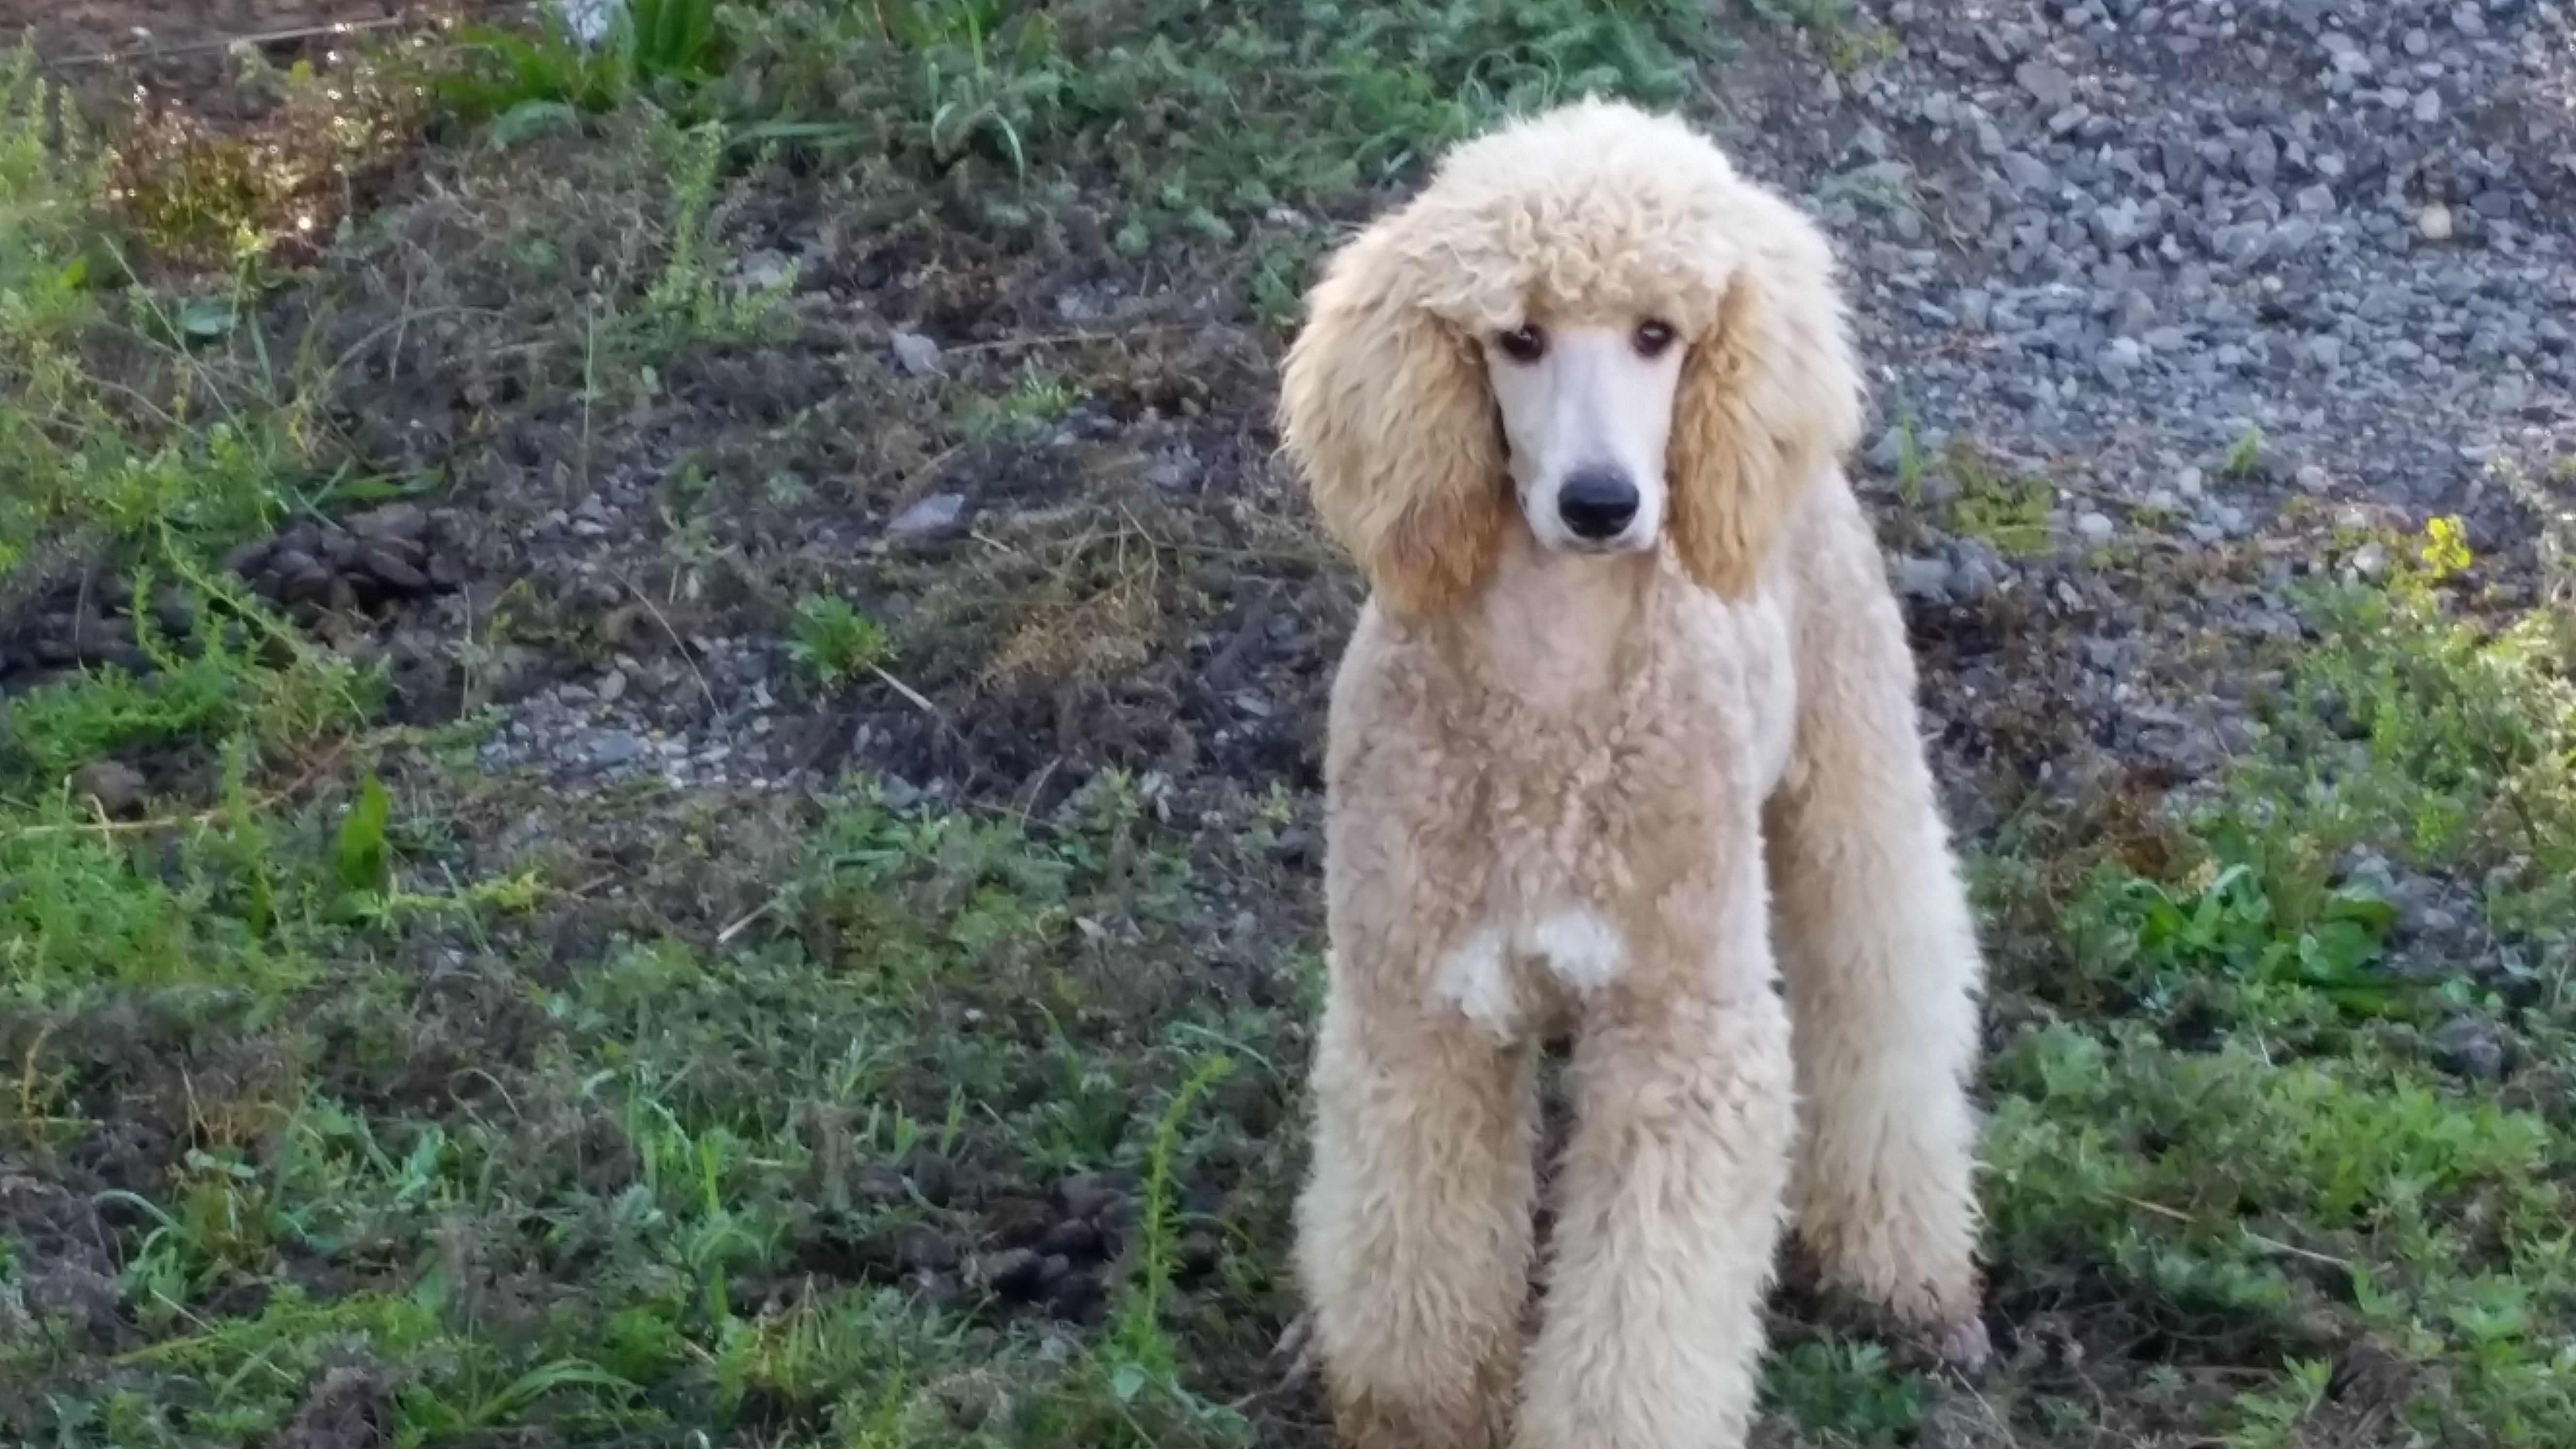 Appricot Abstract Standard Poodle Cavapoo Puppies